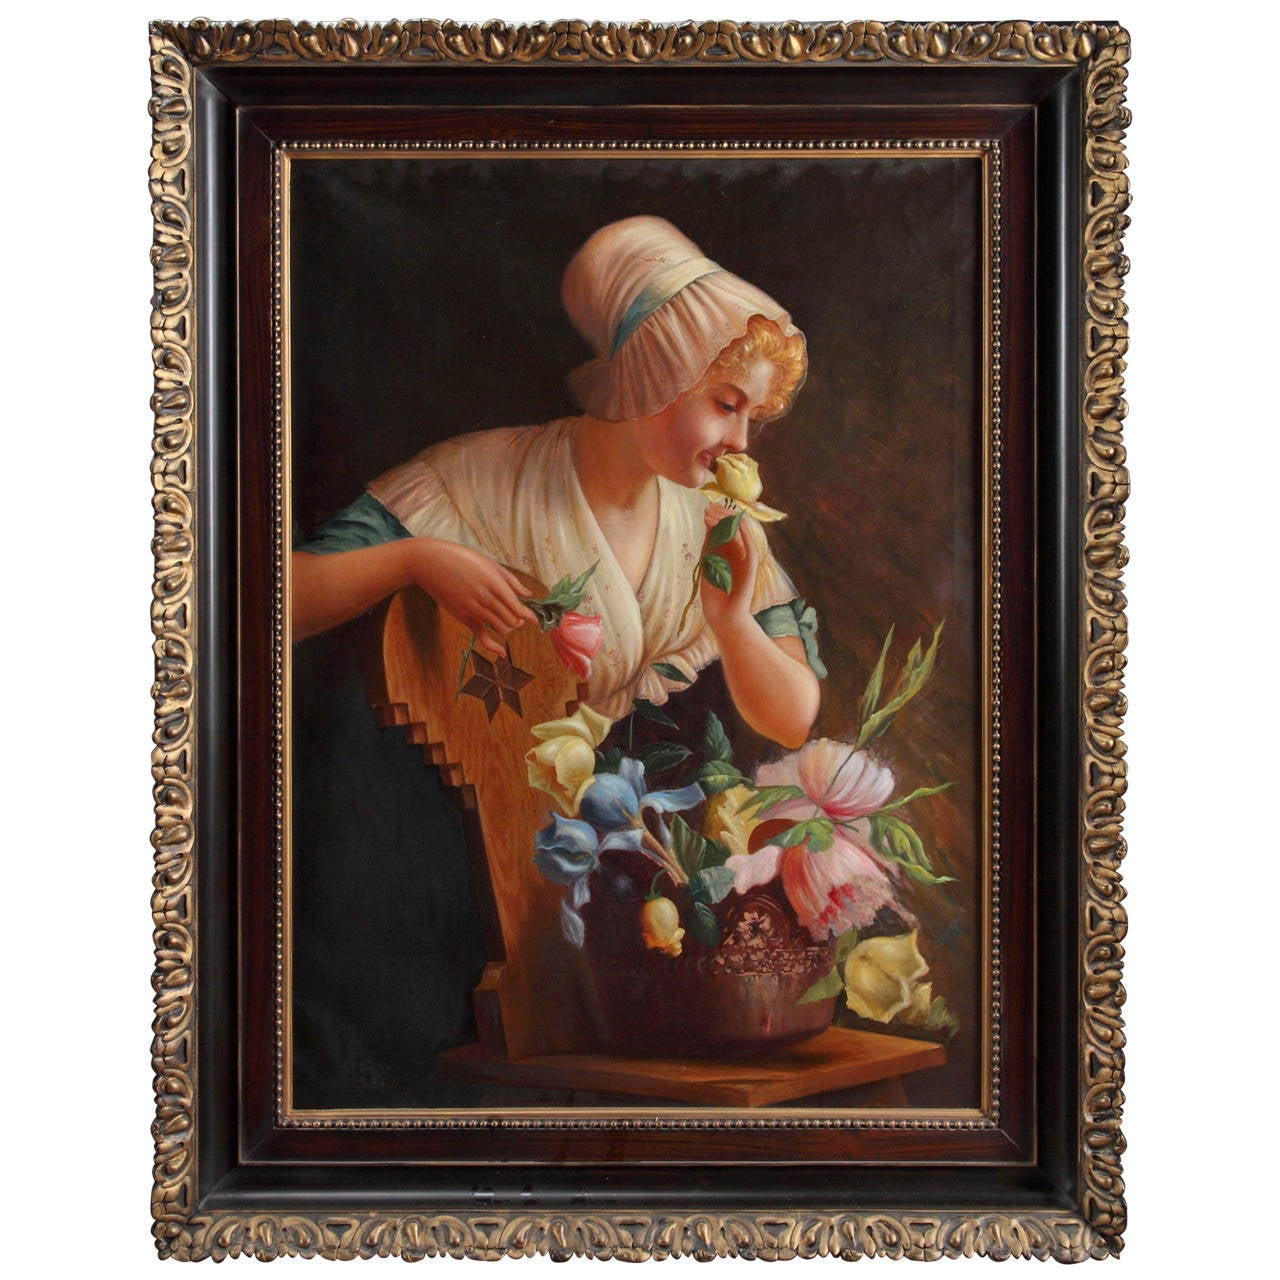 An Italian Portrait of a Lady with a Basket of Roses